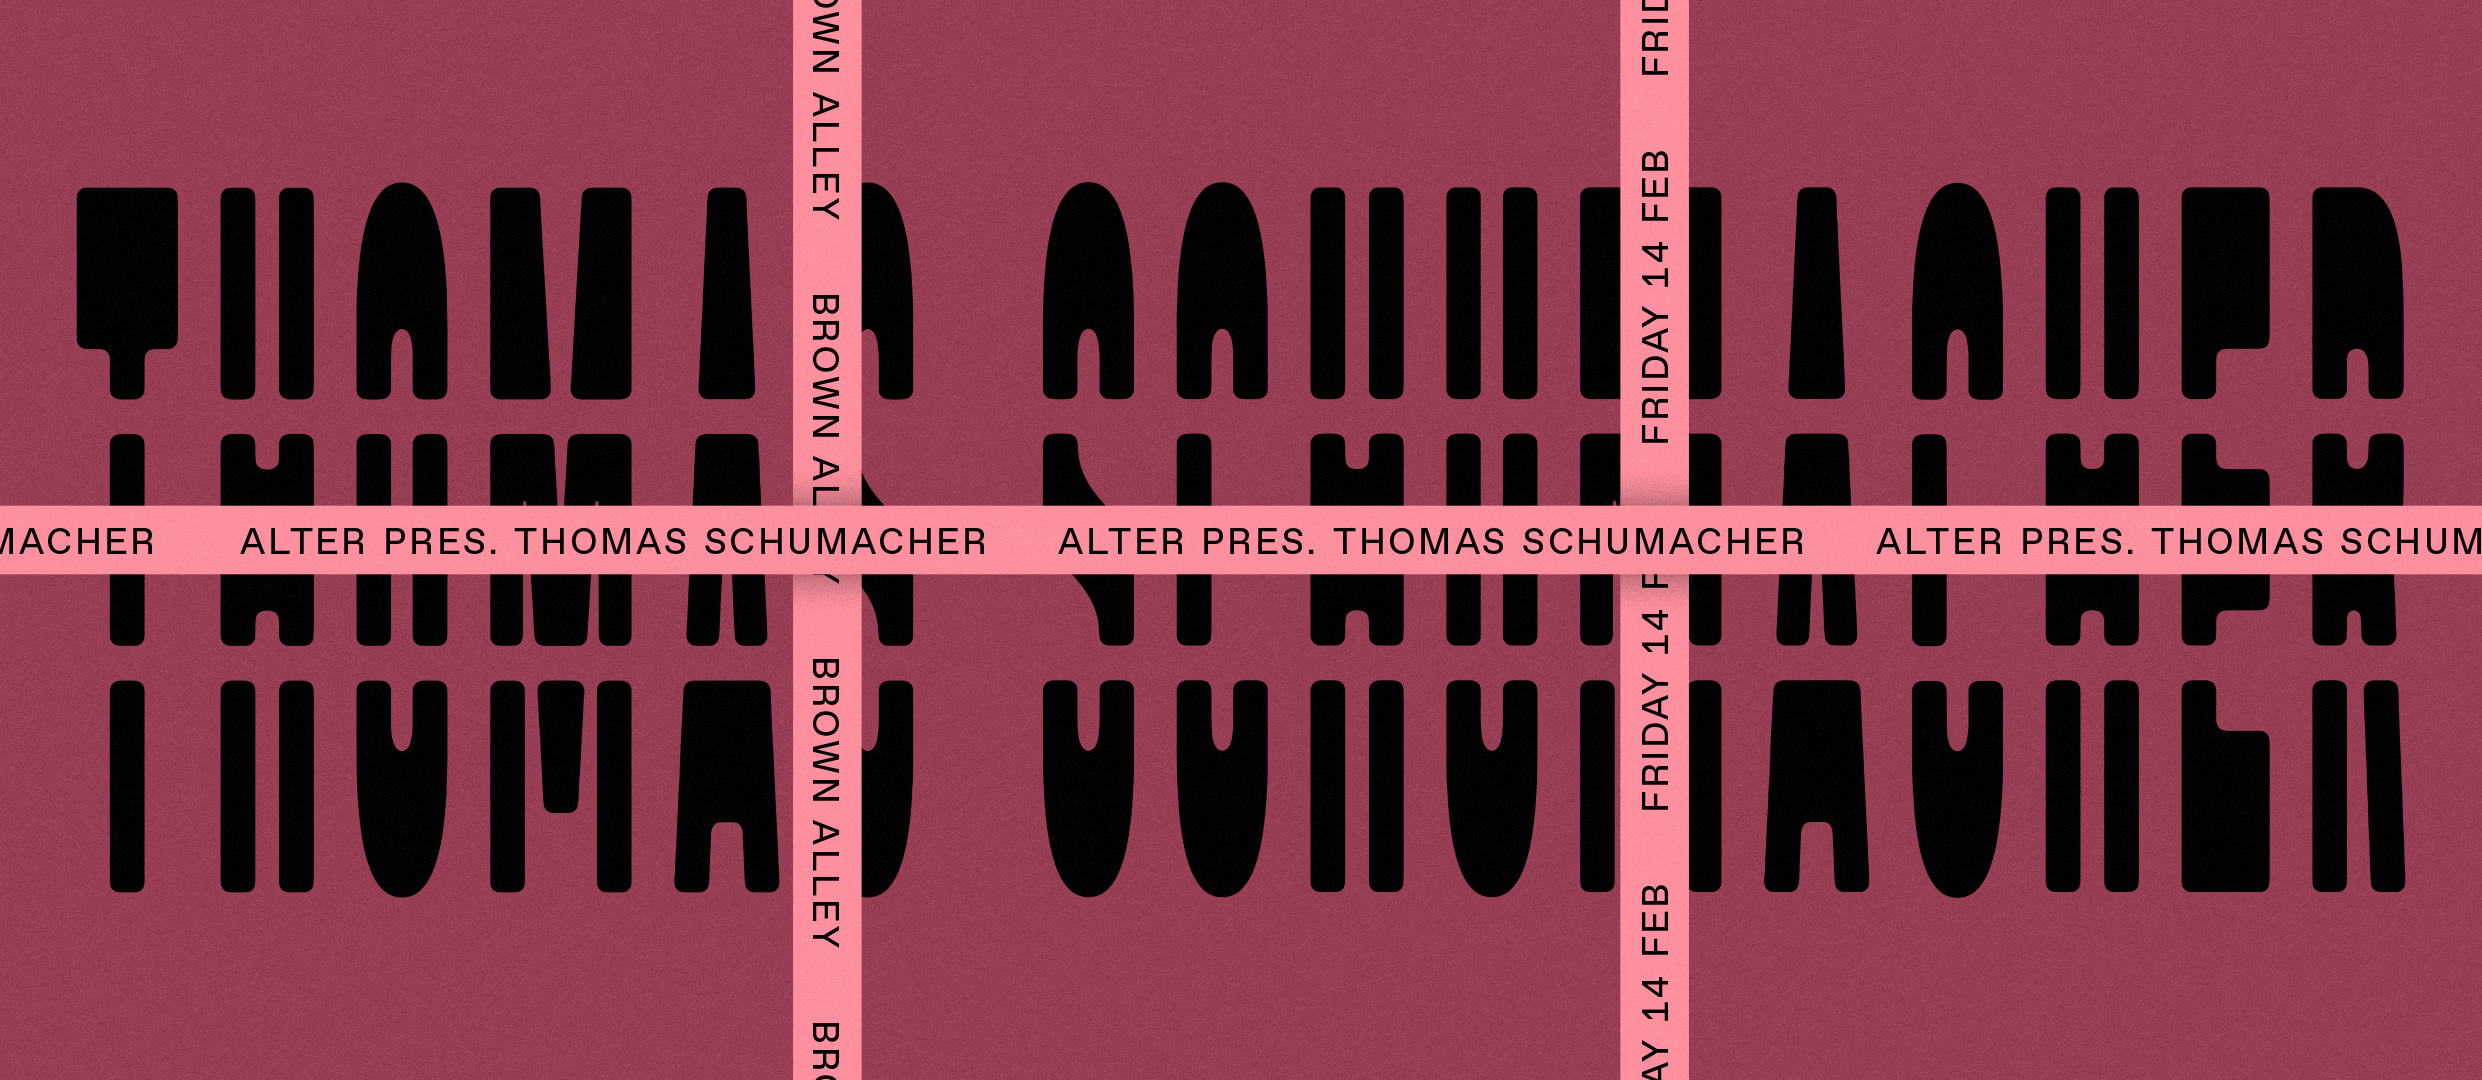 Tickets for Thomas Schumacher - Brown Alley in Melbourne in Melbourne from Ticketbooth